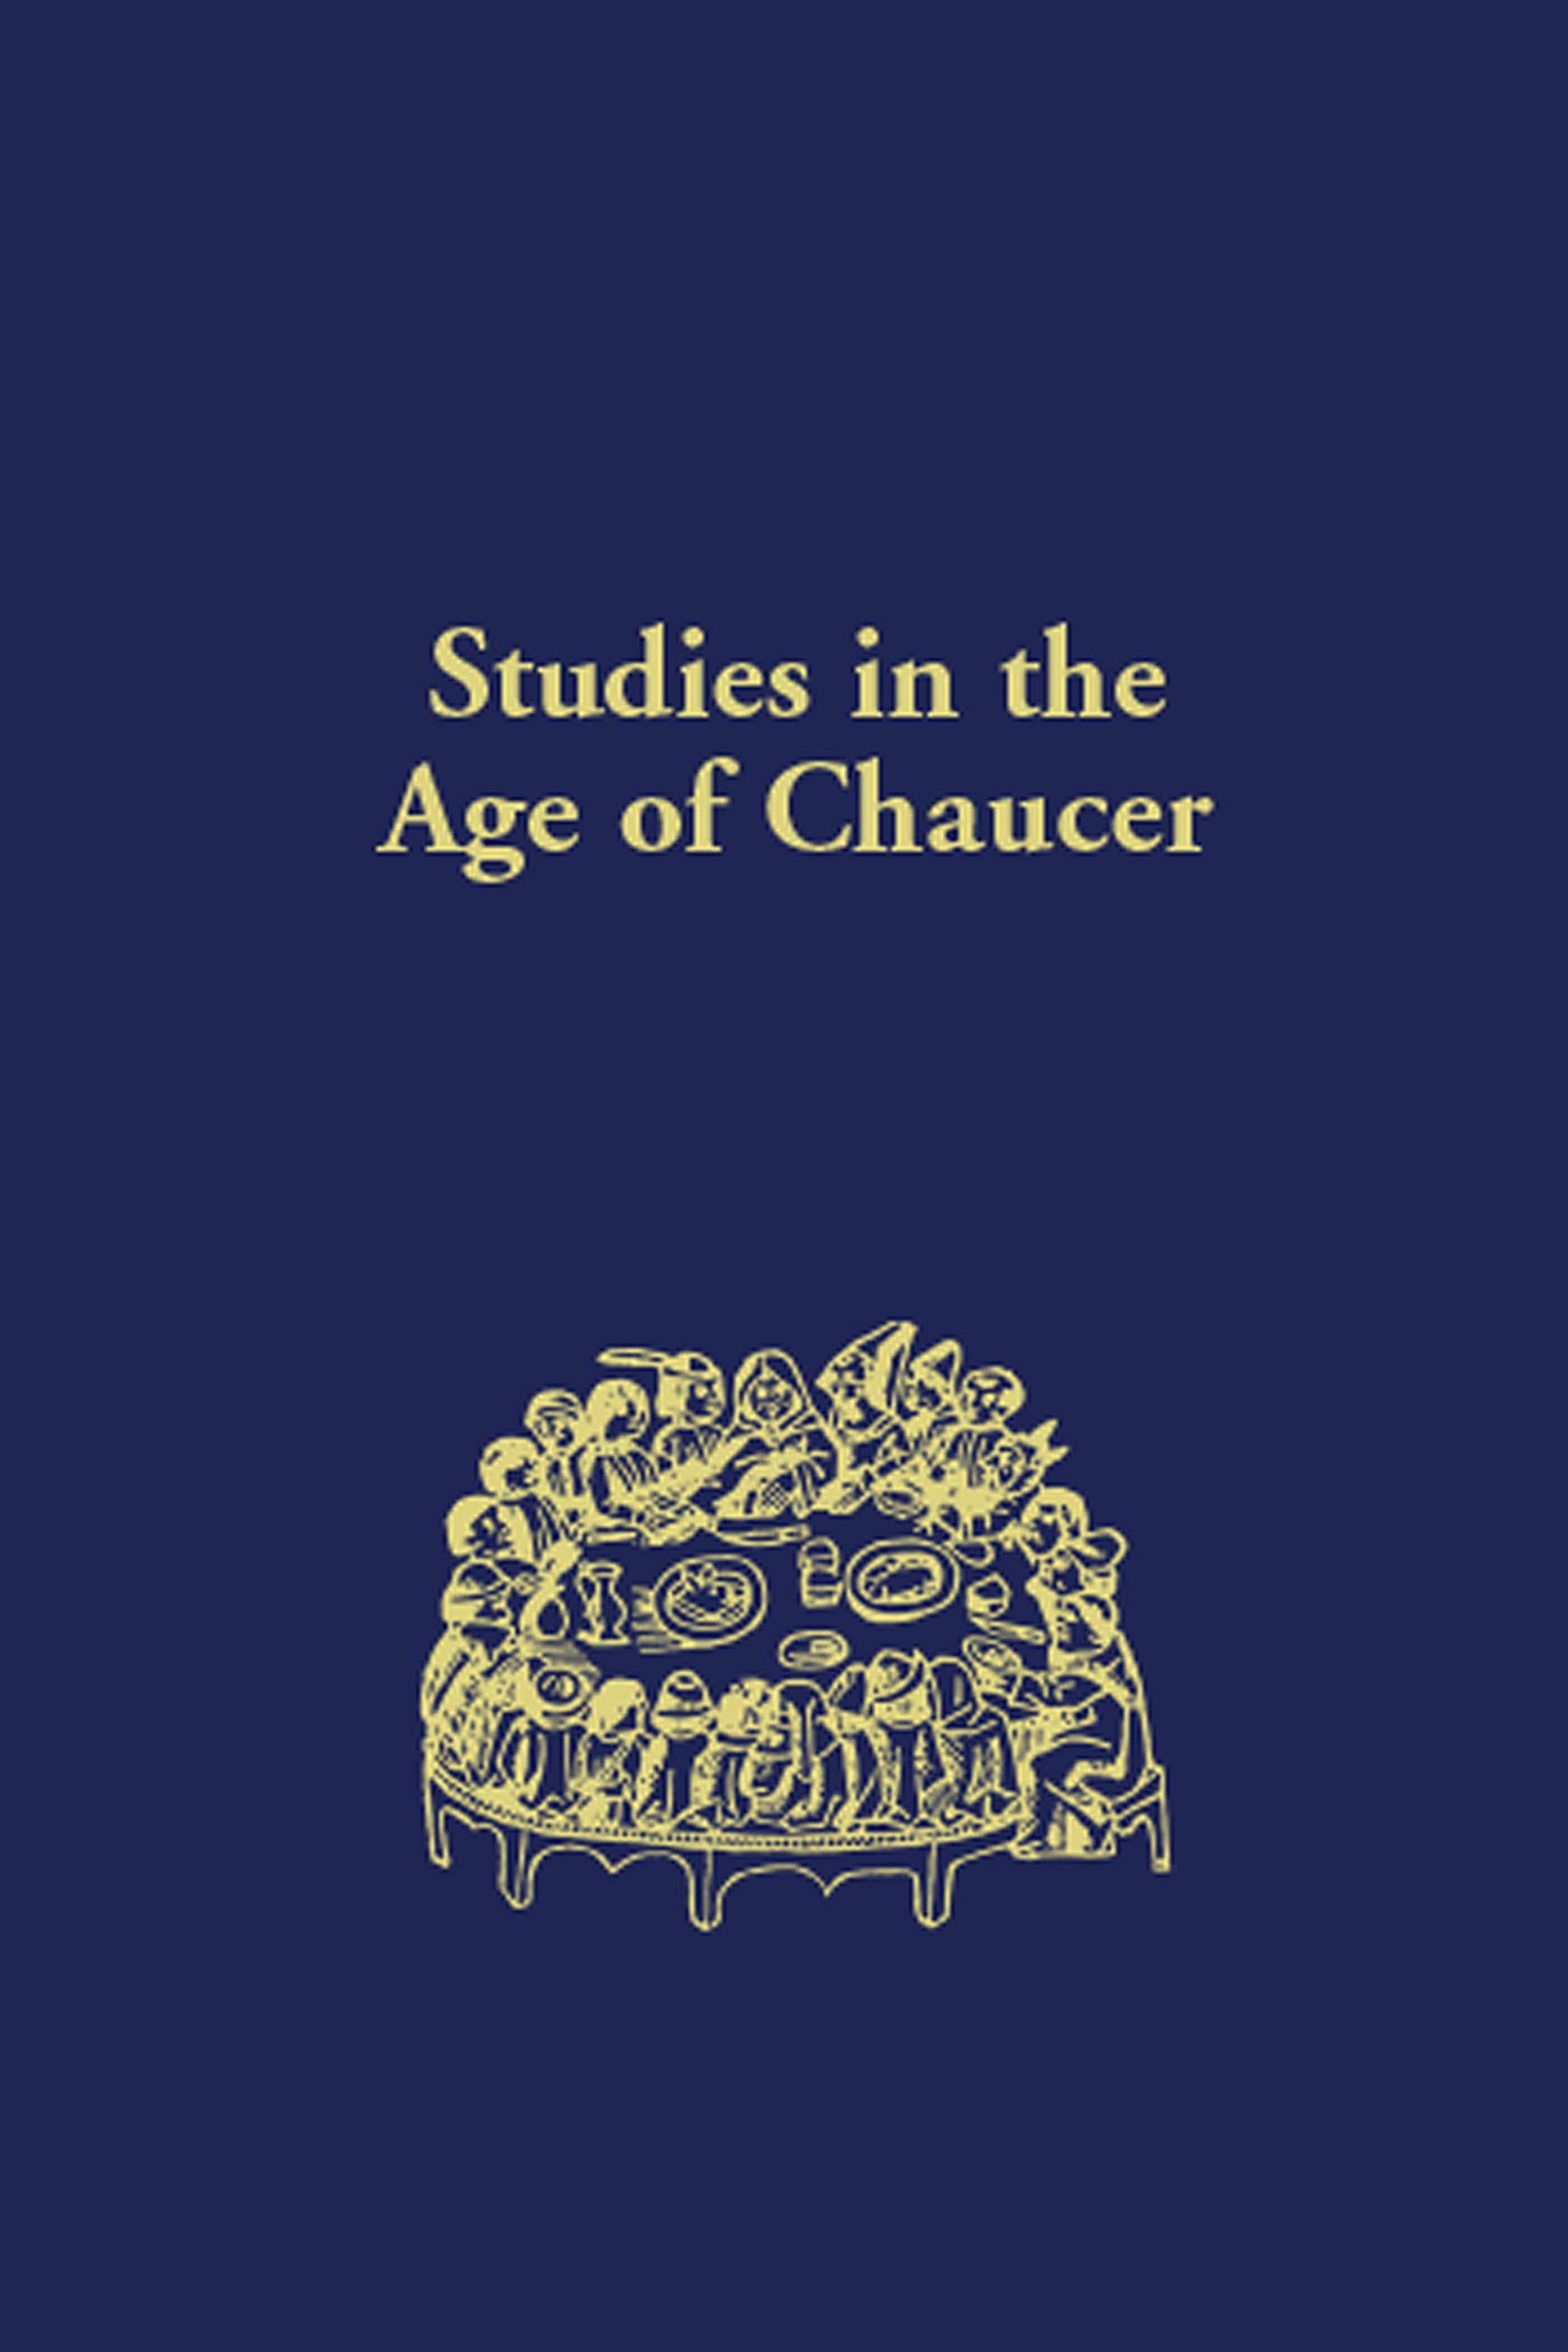 Download Studies in the Age of Chaucer: Volume 38 (NCS Studies in the Age of Chaucer) PDF